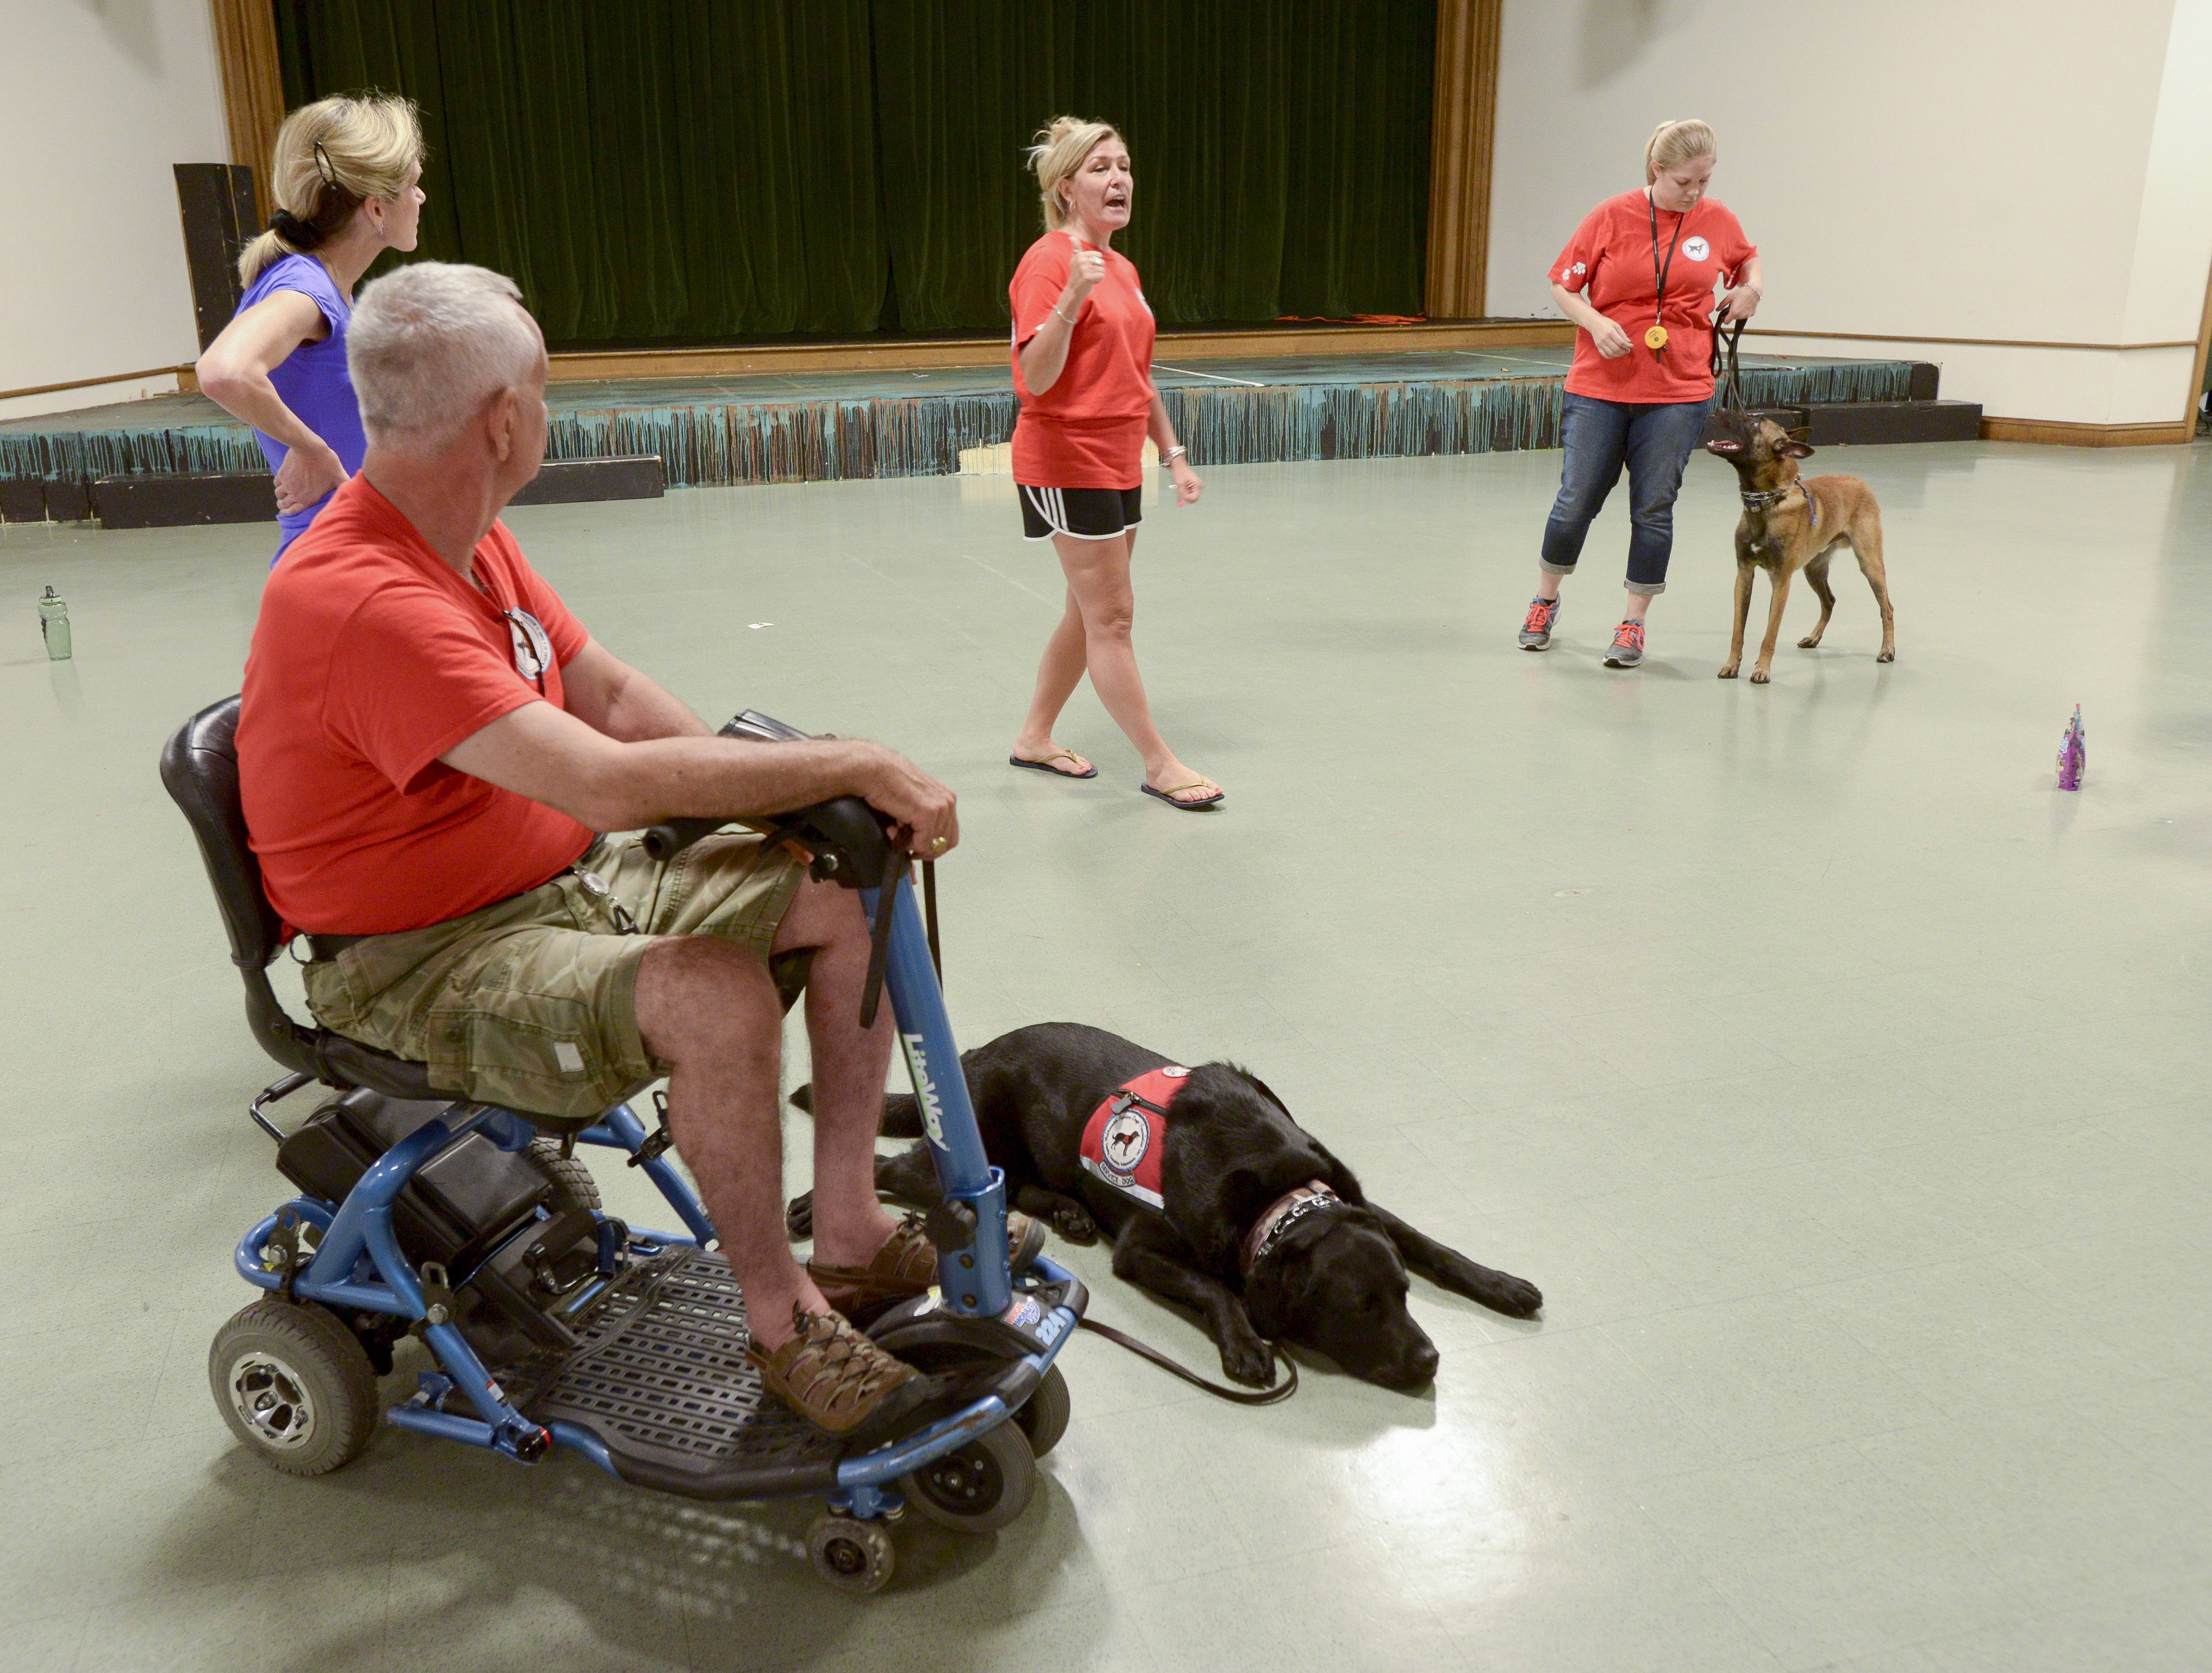 Joe Stachurki of St. Charles and his service dog, Dora, participate in a MidAmerica Service Dogs' Foundation training class in Hinsdale. Top photo, service dog Bode awaits instruction from owner Jenny Youngwith of Carol Stream.